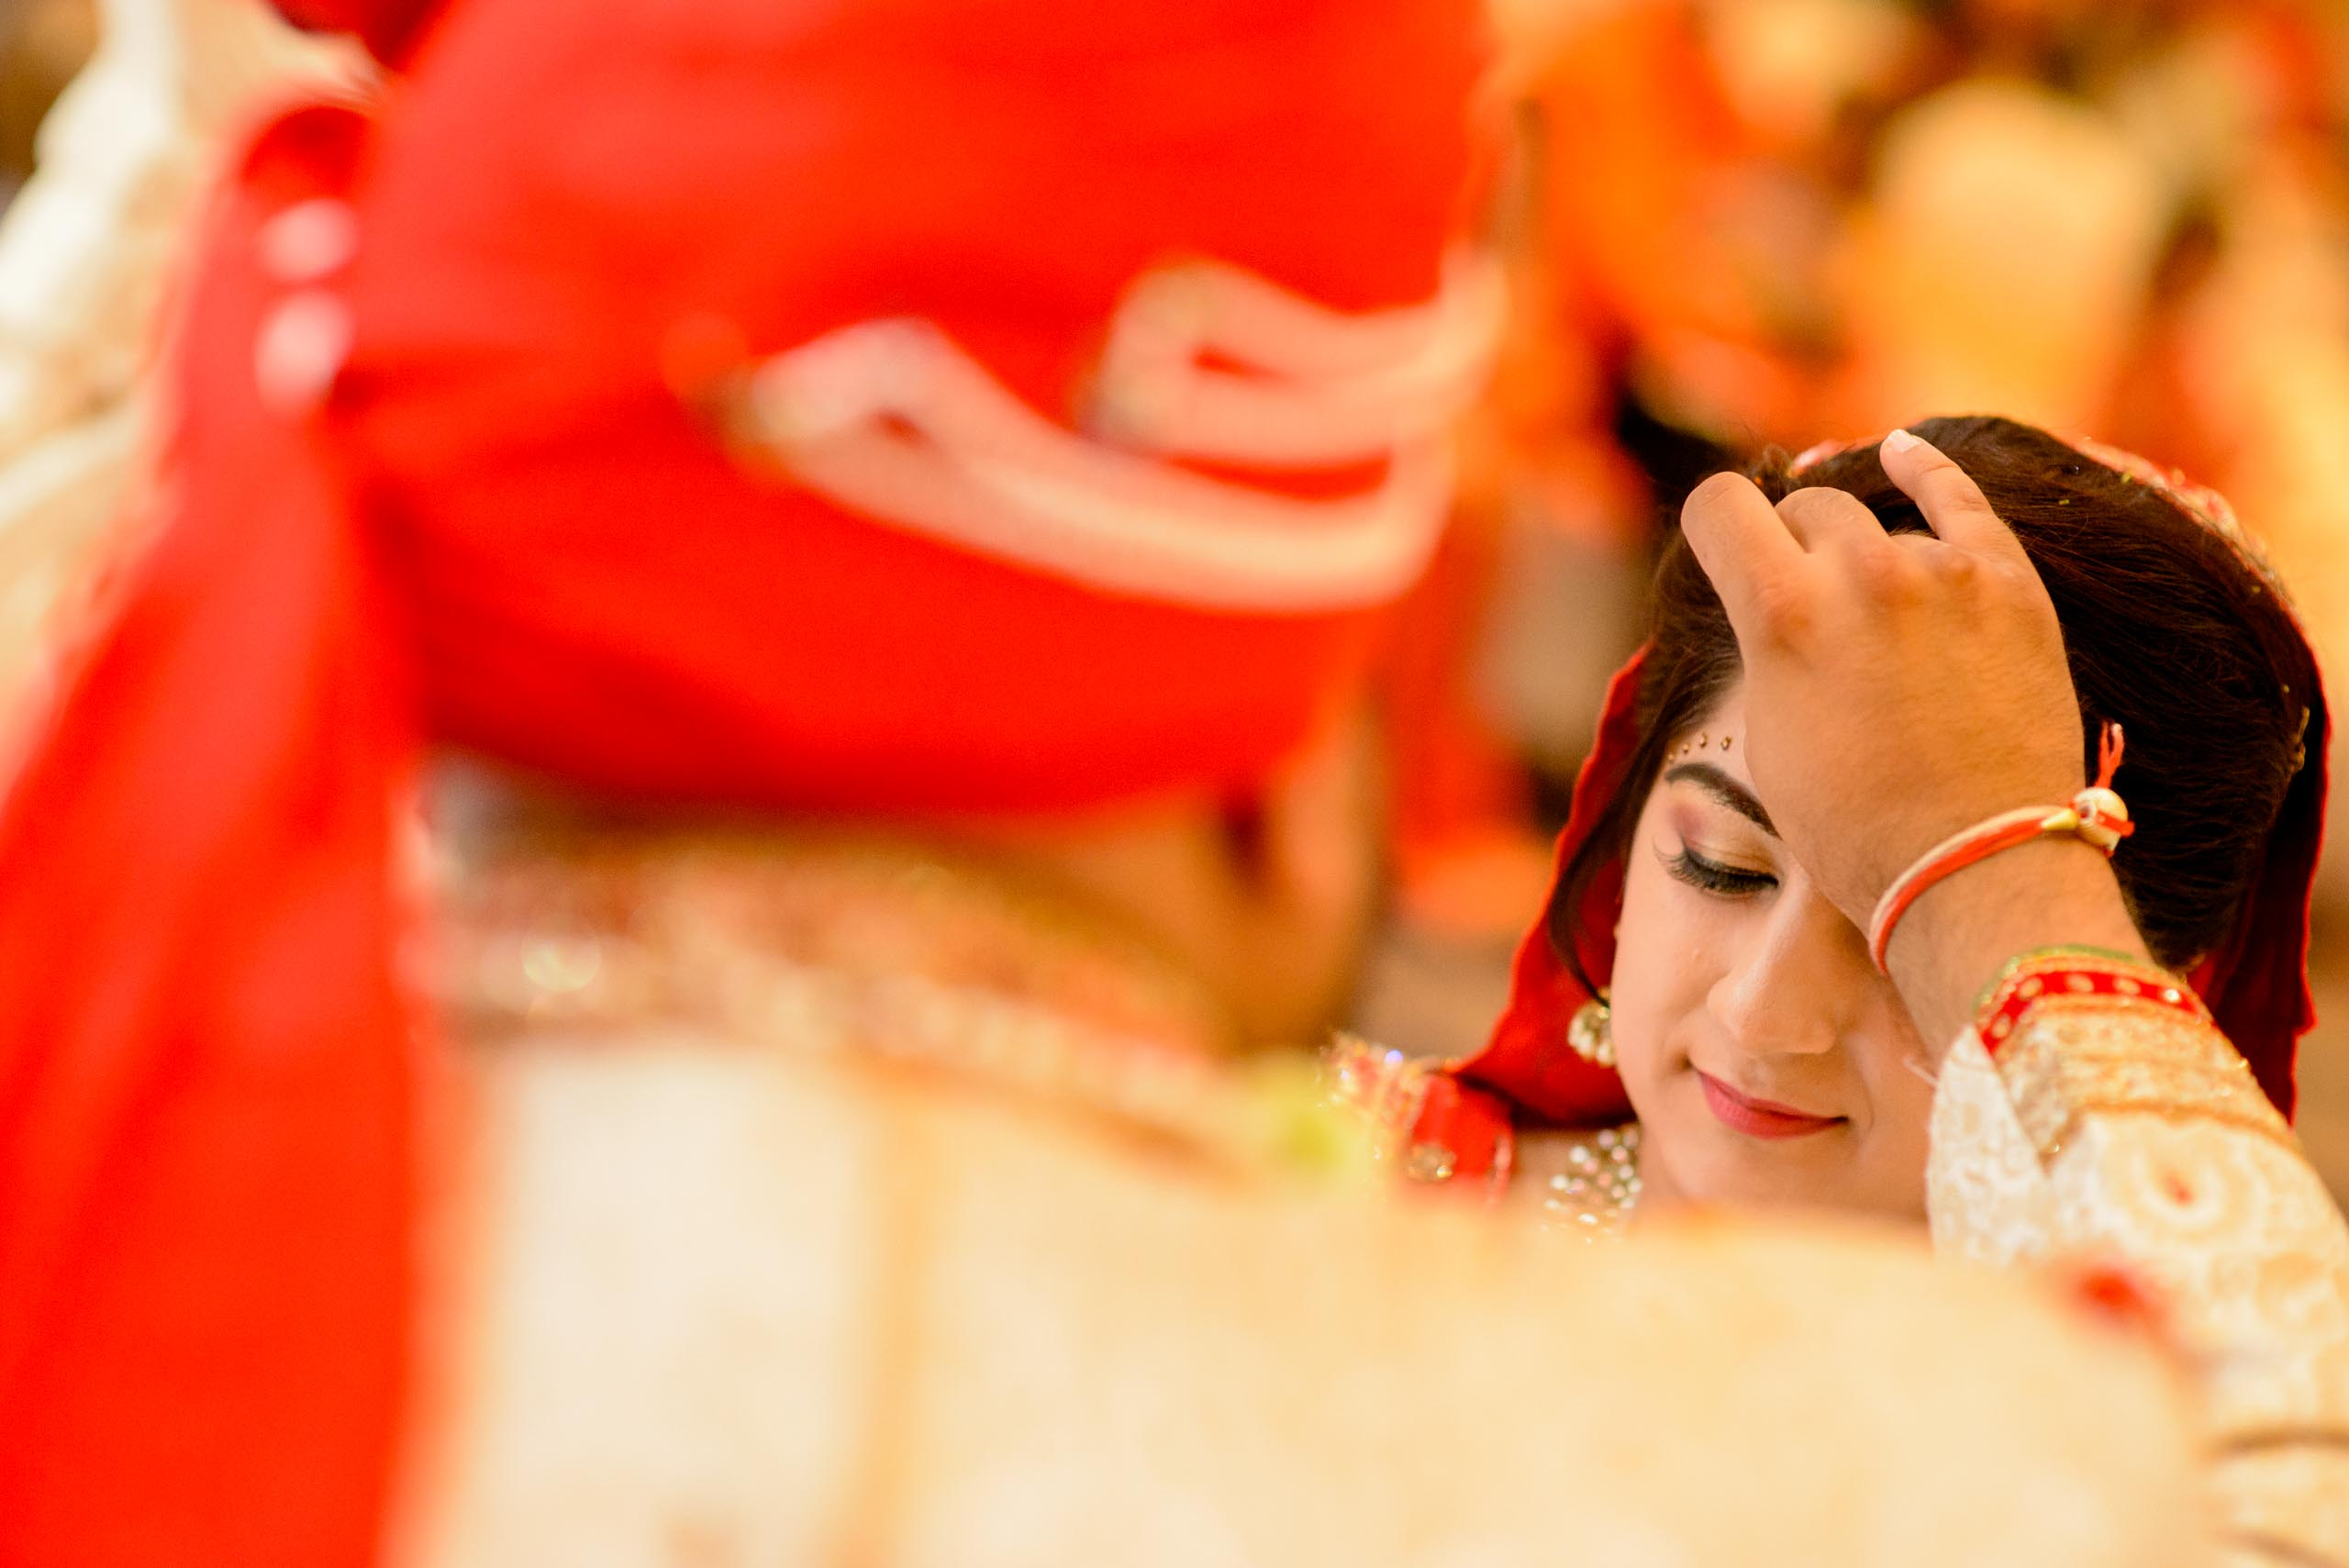 Amit&Amee-preview-edenmoments-62